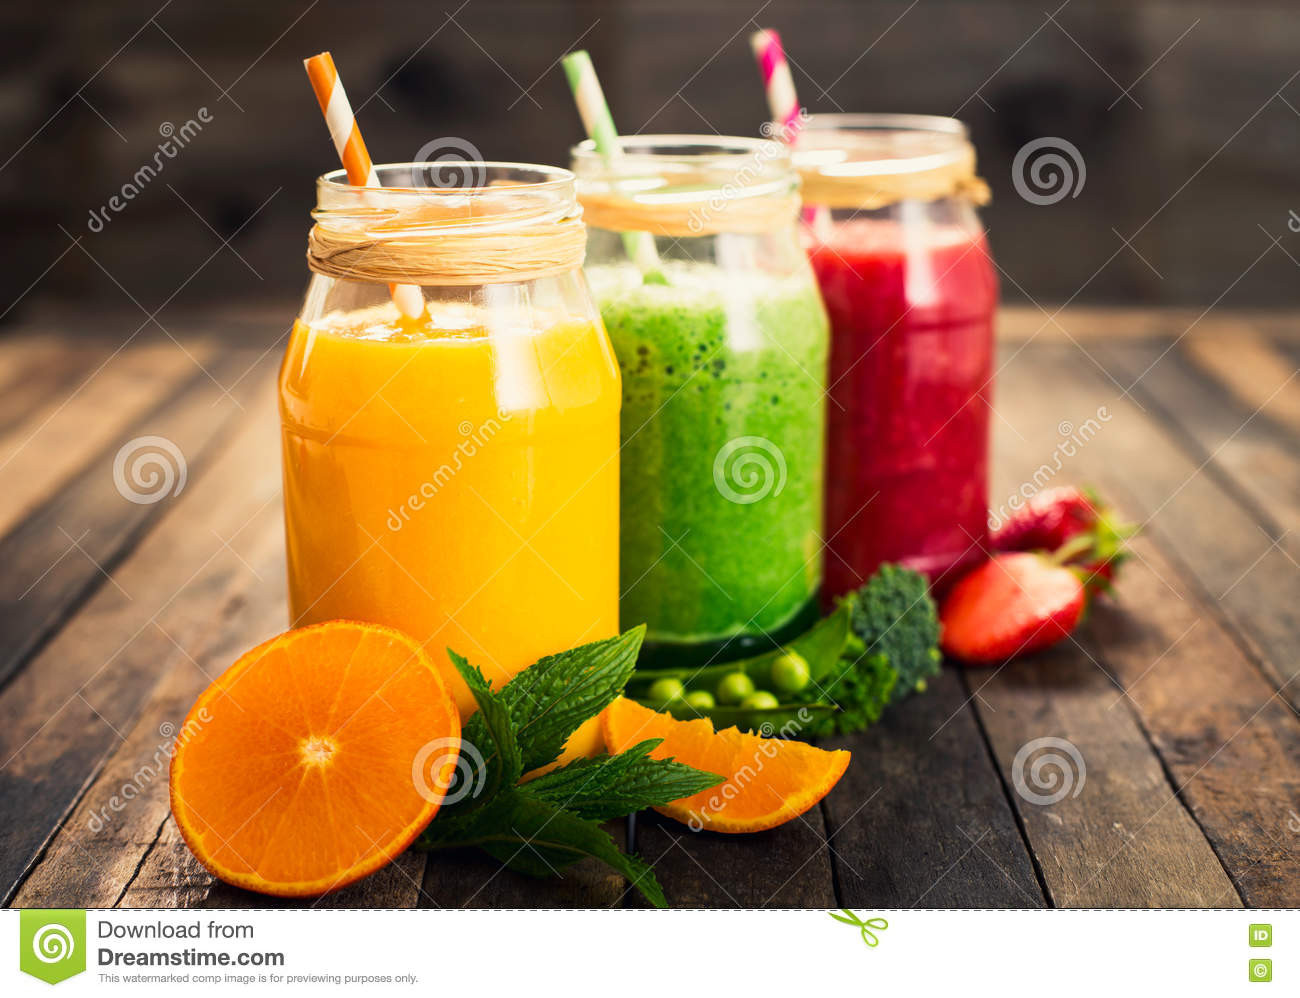 Healthy Fruit And Vegetable Smoothie Recipes  Healthy Fruit And Ve able Smoothies Stock Image Image